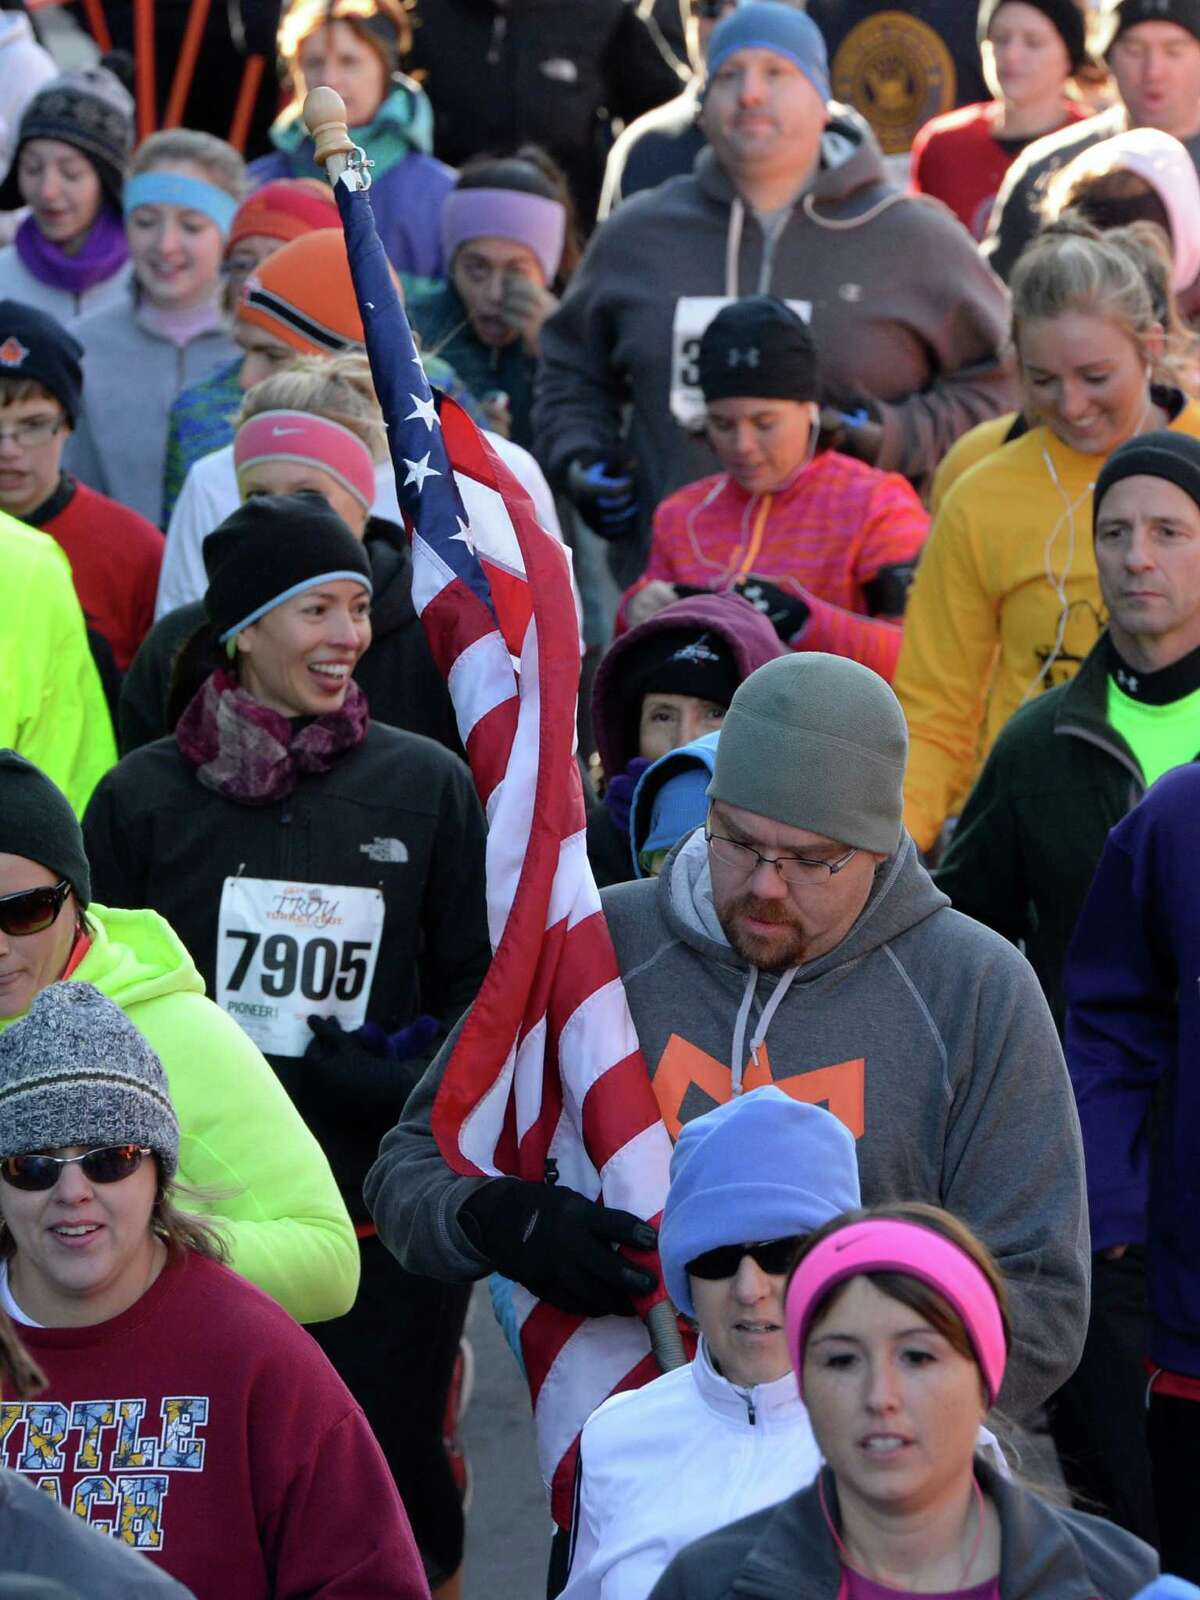 A runner carried an American Flag on the course Thursday Nov. 28, 2013, in the Troy Turkey Trot 5K in Troy, N.Y. (Skip Dickstein/Times Union)